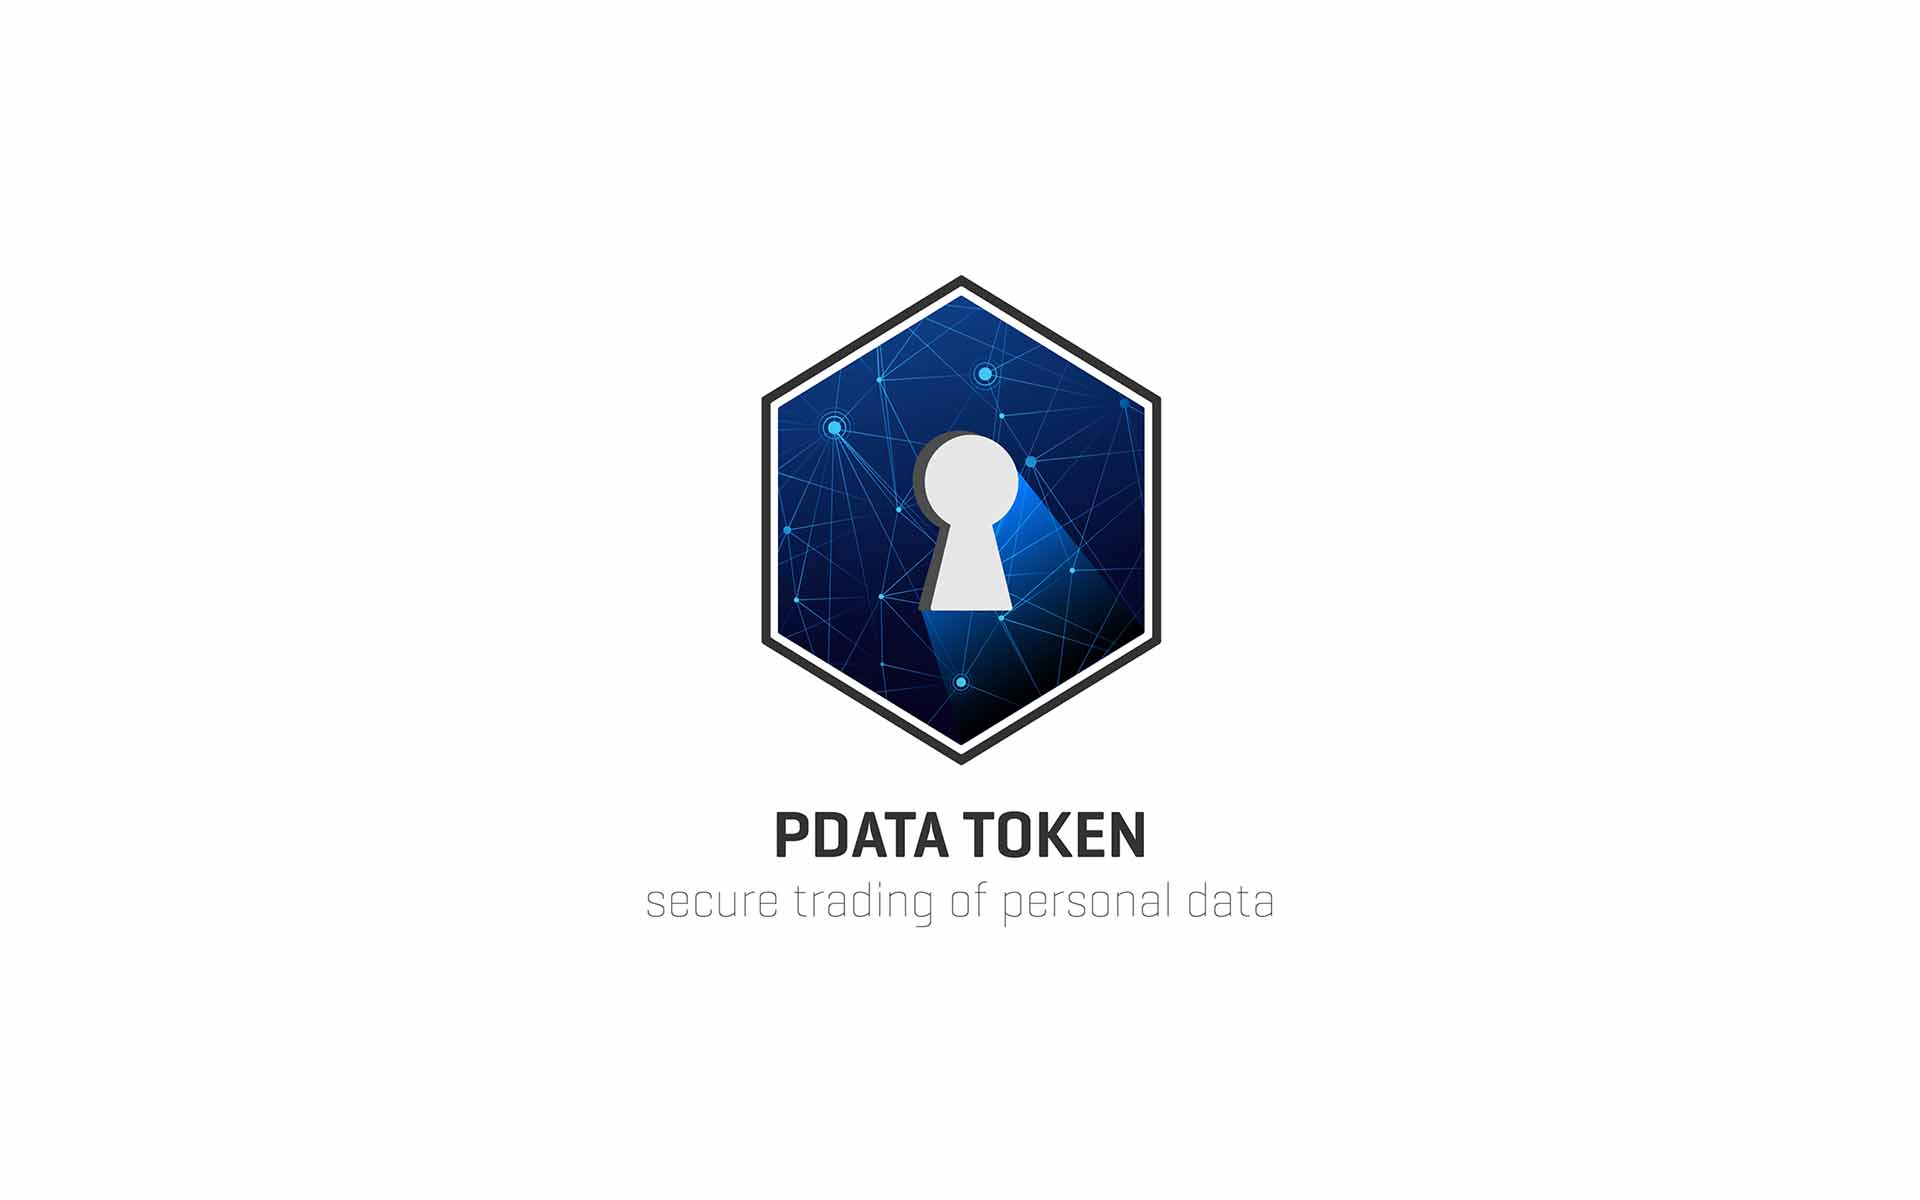 Opiria and the PDATA Token: Helping You Securely & Privately Monetize Your Personal Data